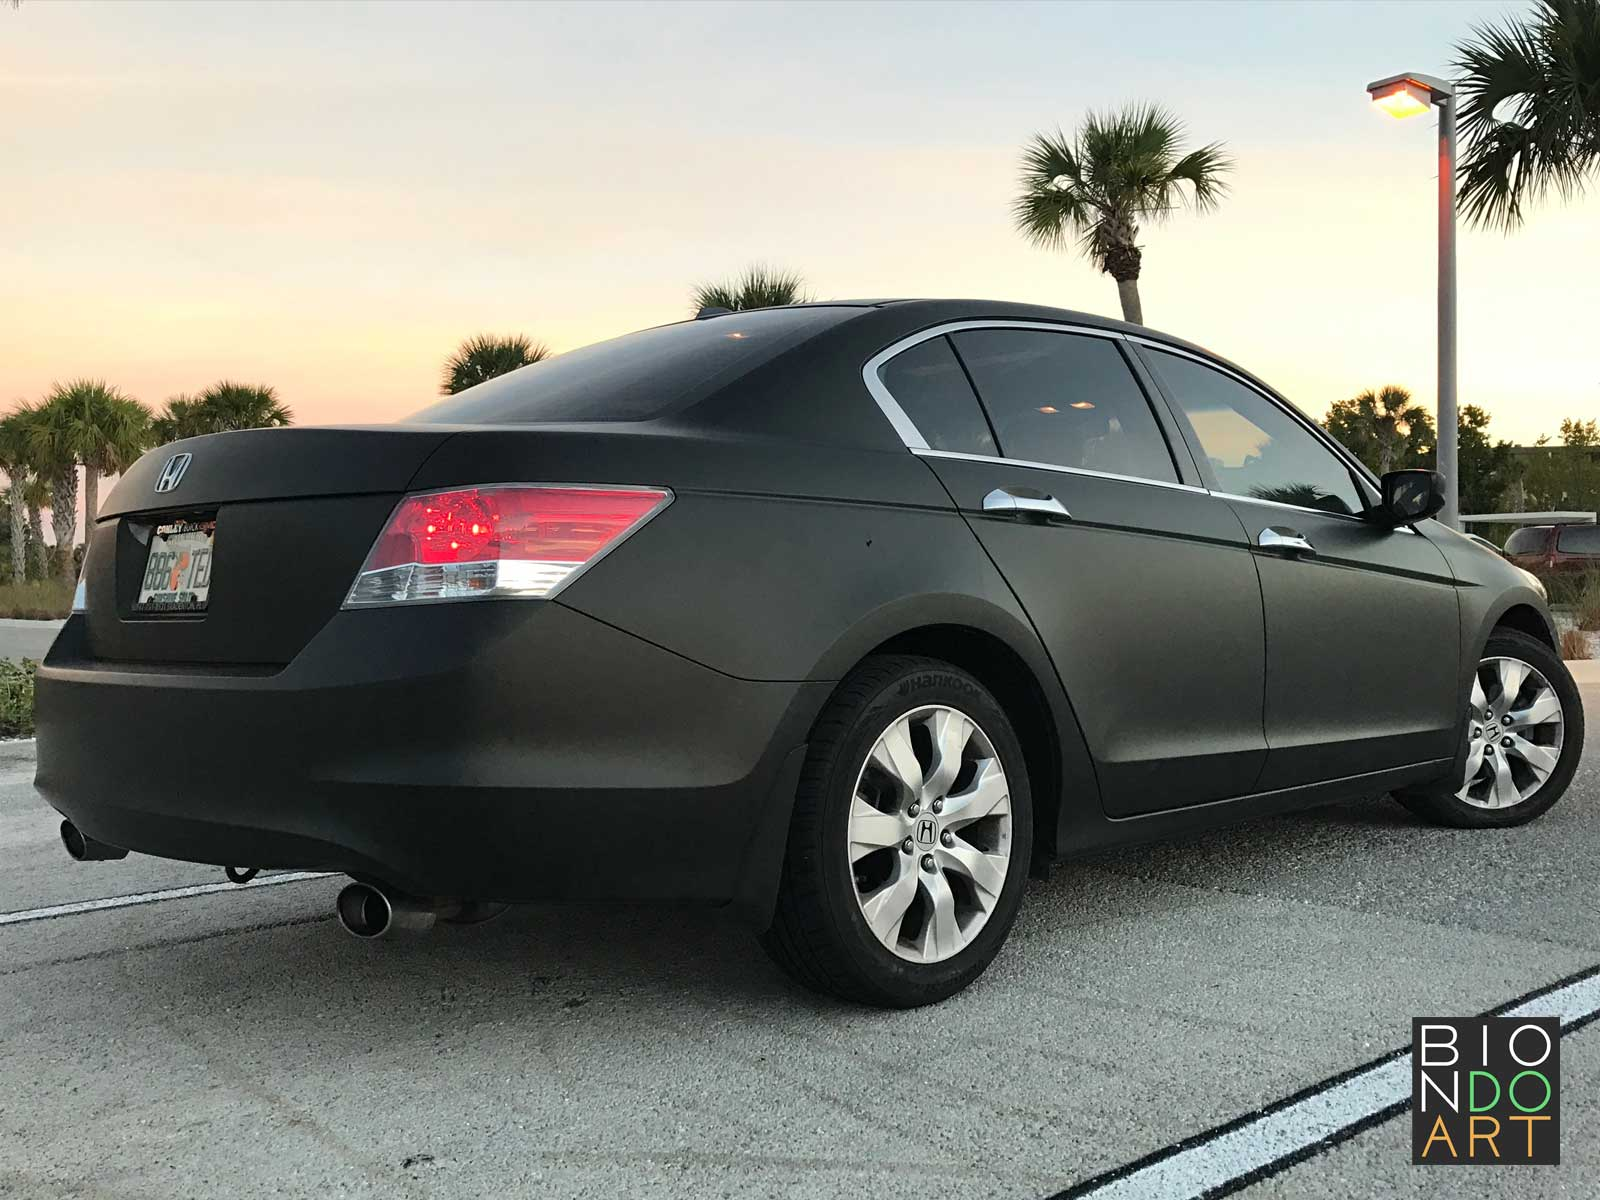 Honda Accord Matte Black